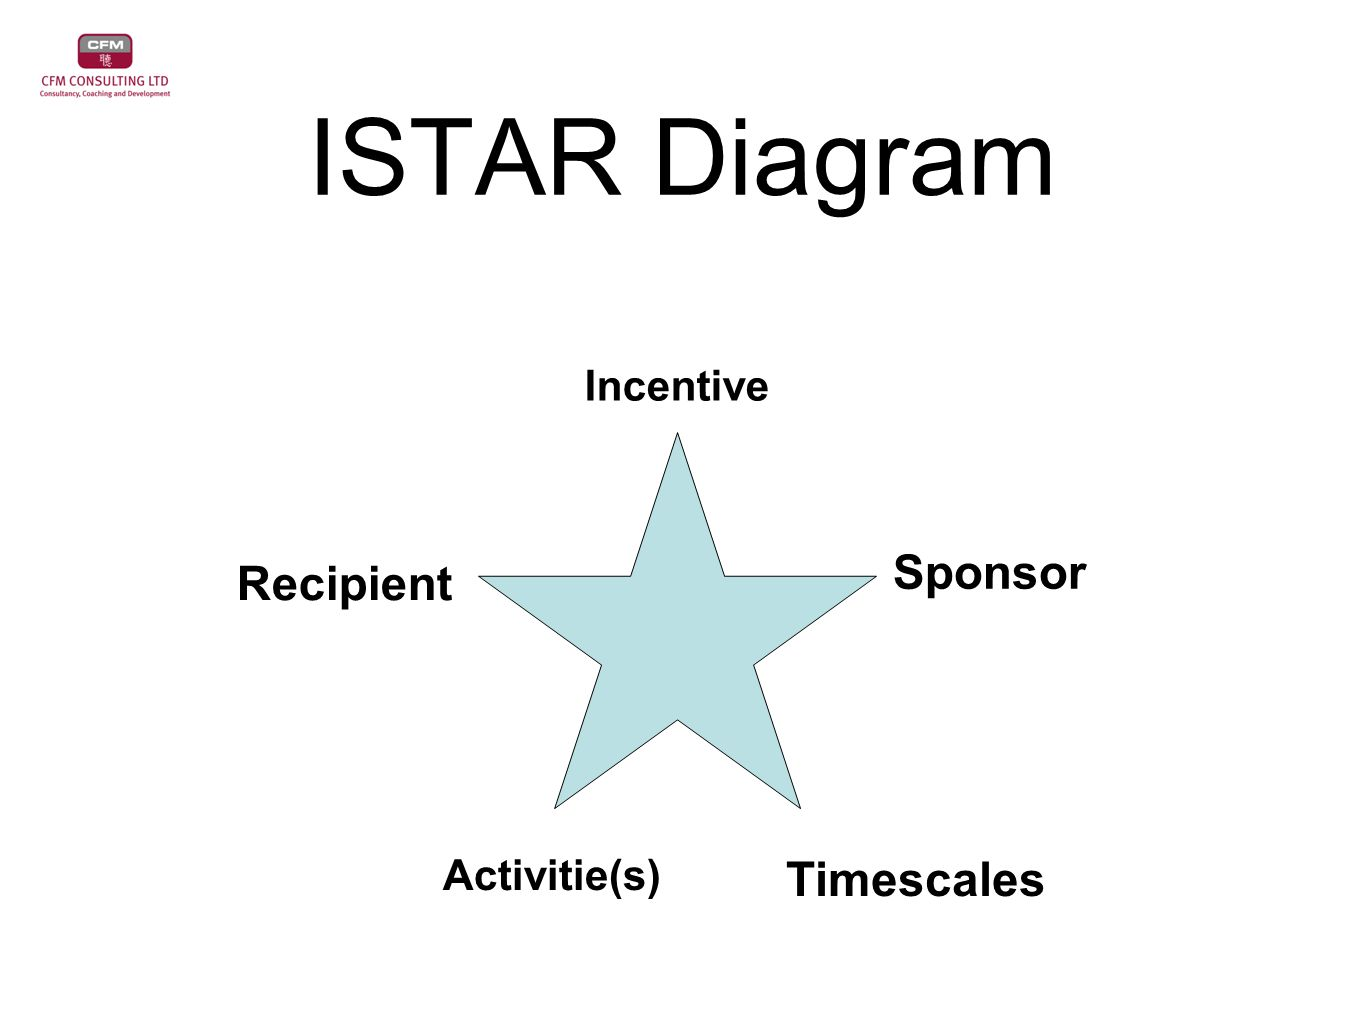 ISTAR Diagram Incentive Sponsor Timescales Activitie(s) Recipient